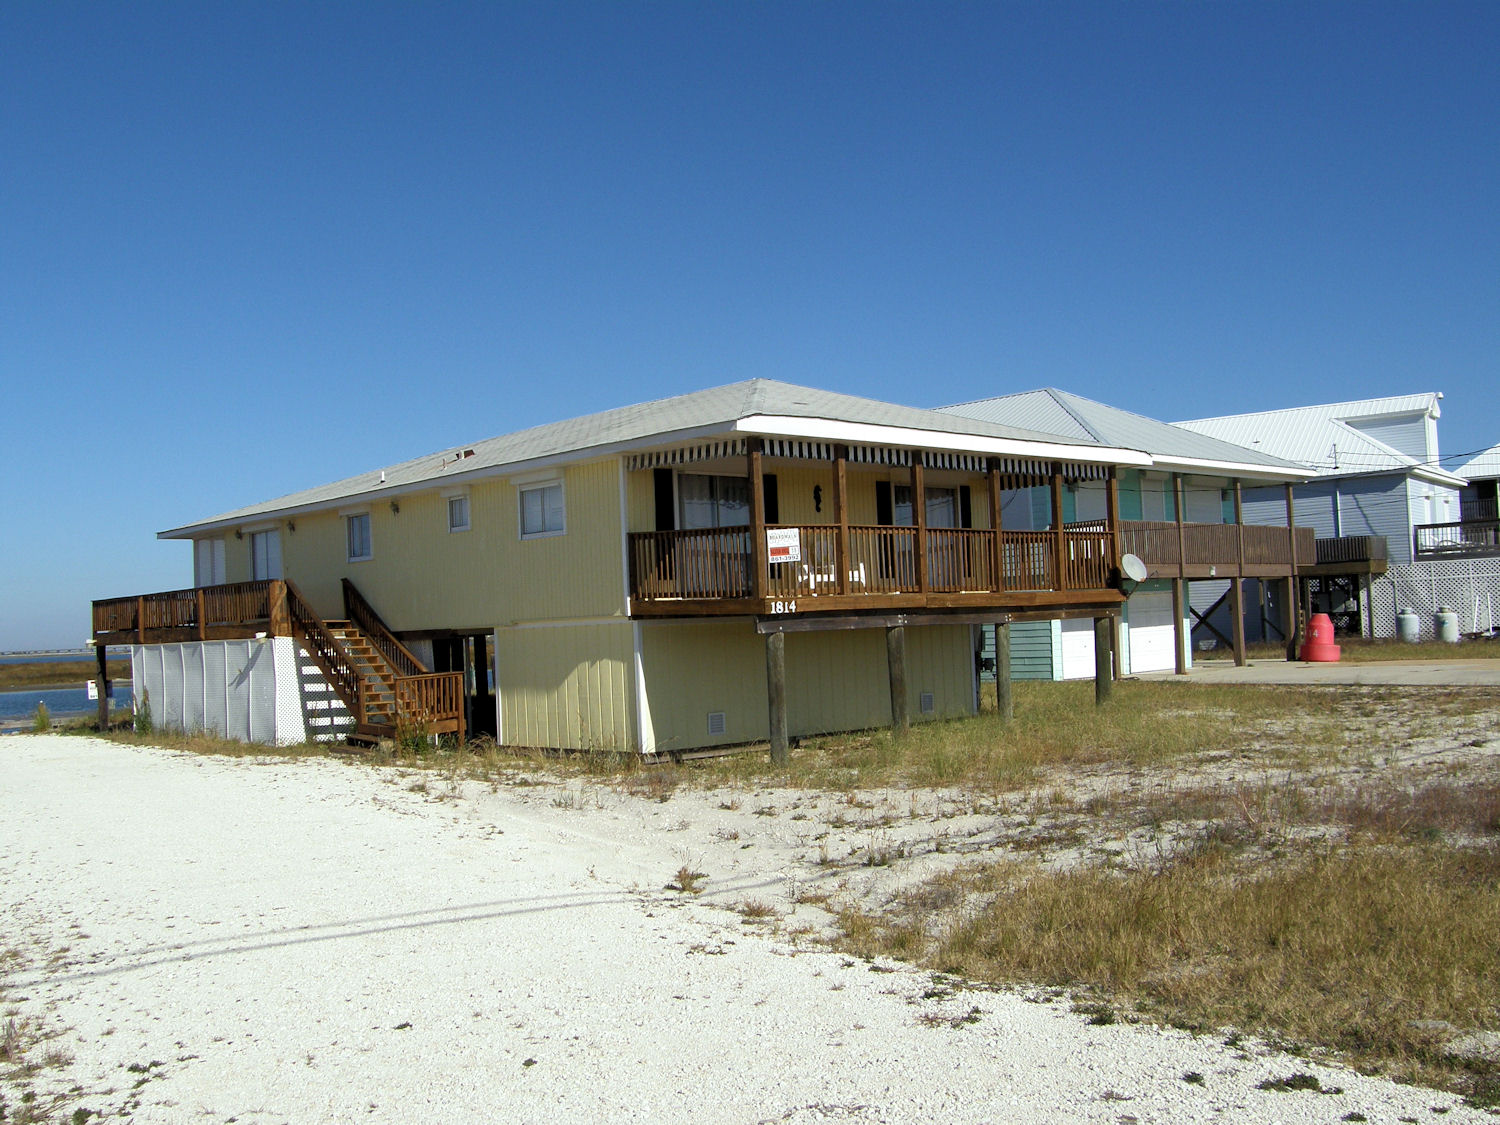 Vacation Rentals Pet Friendly On Dauphin Island